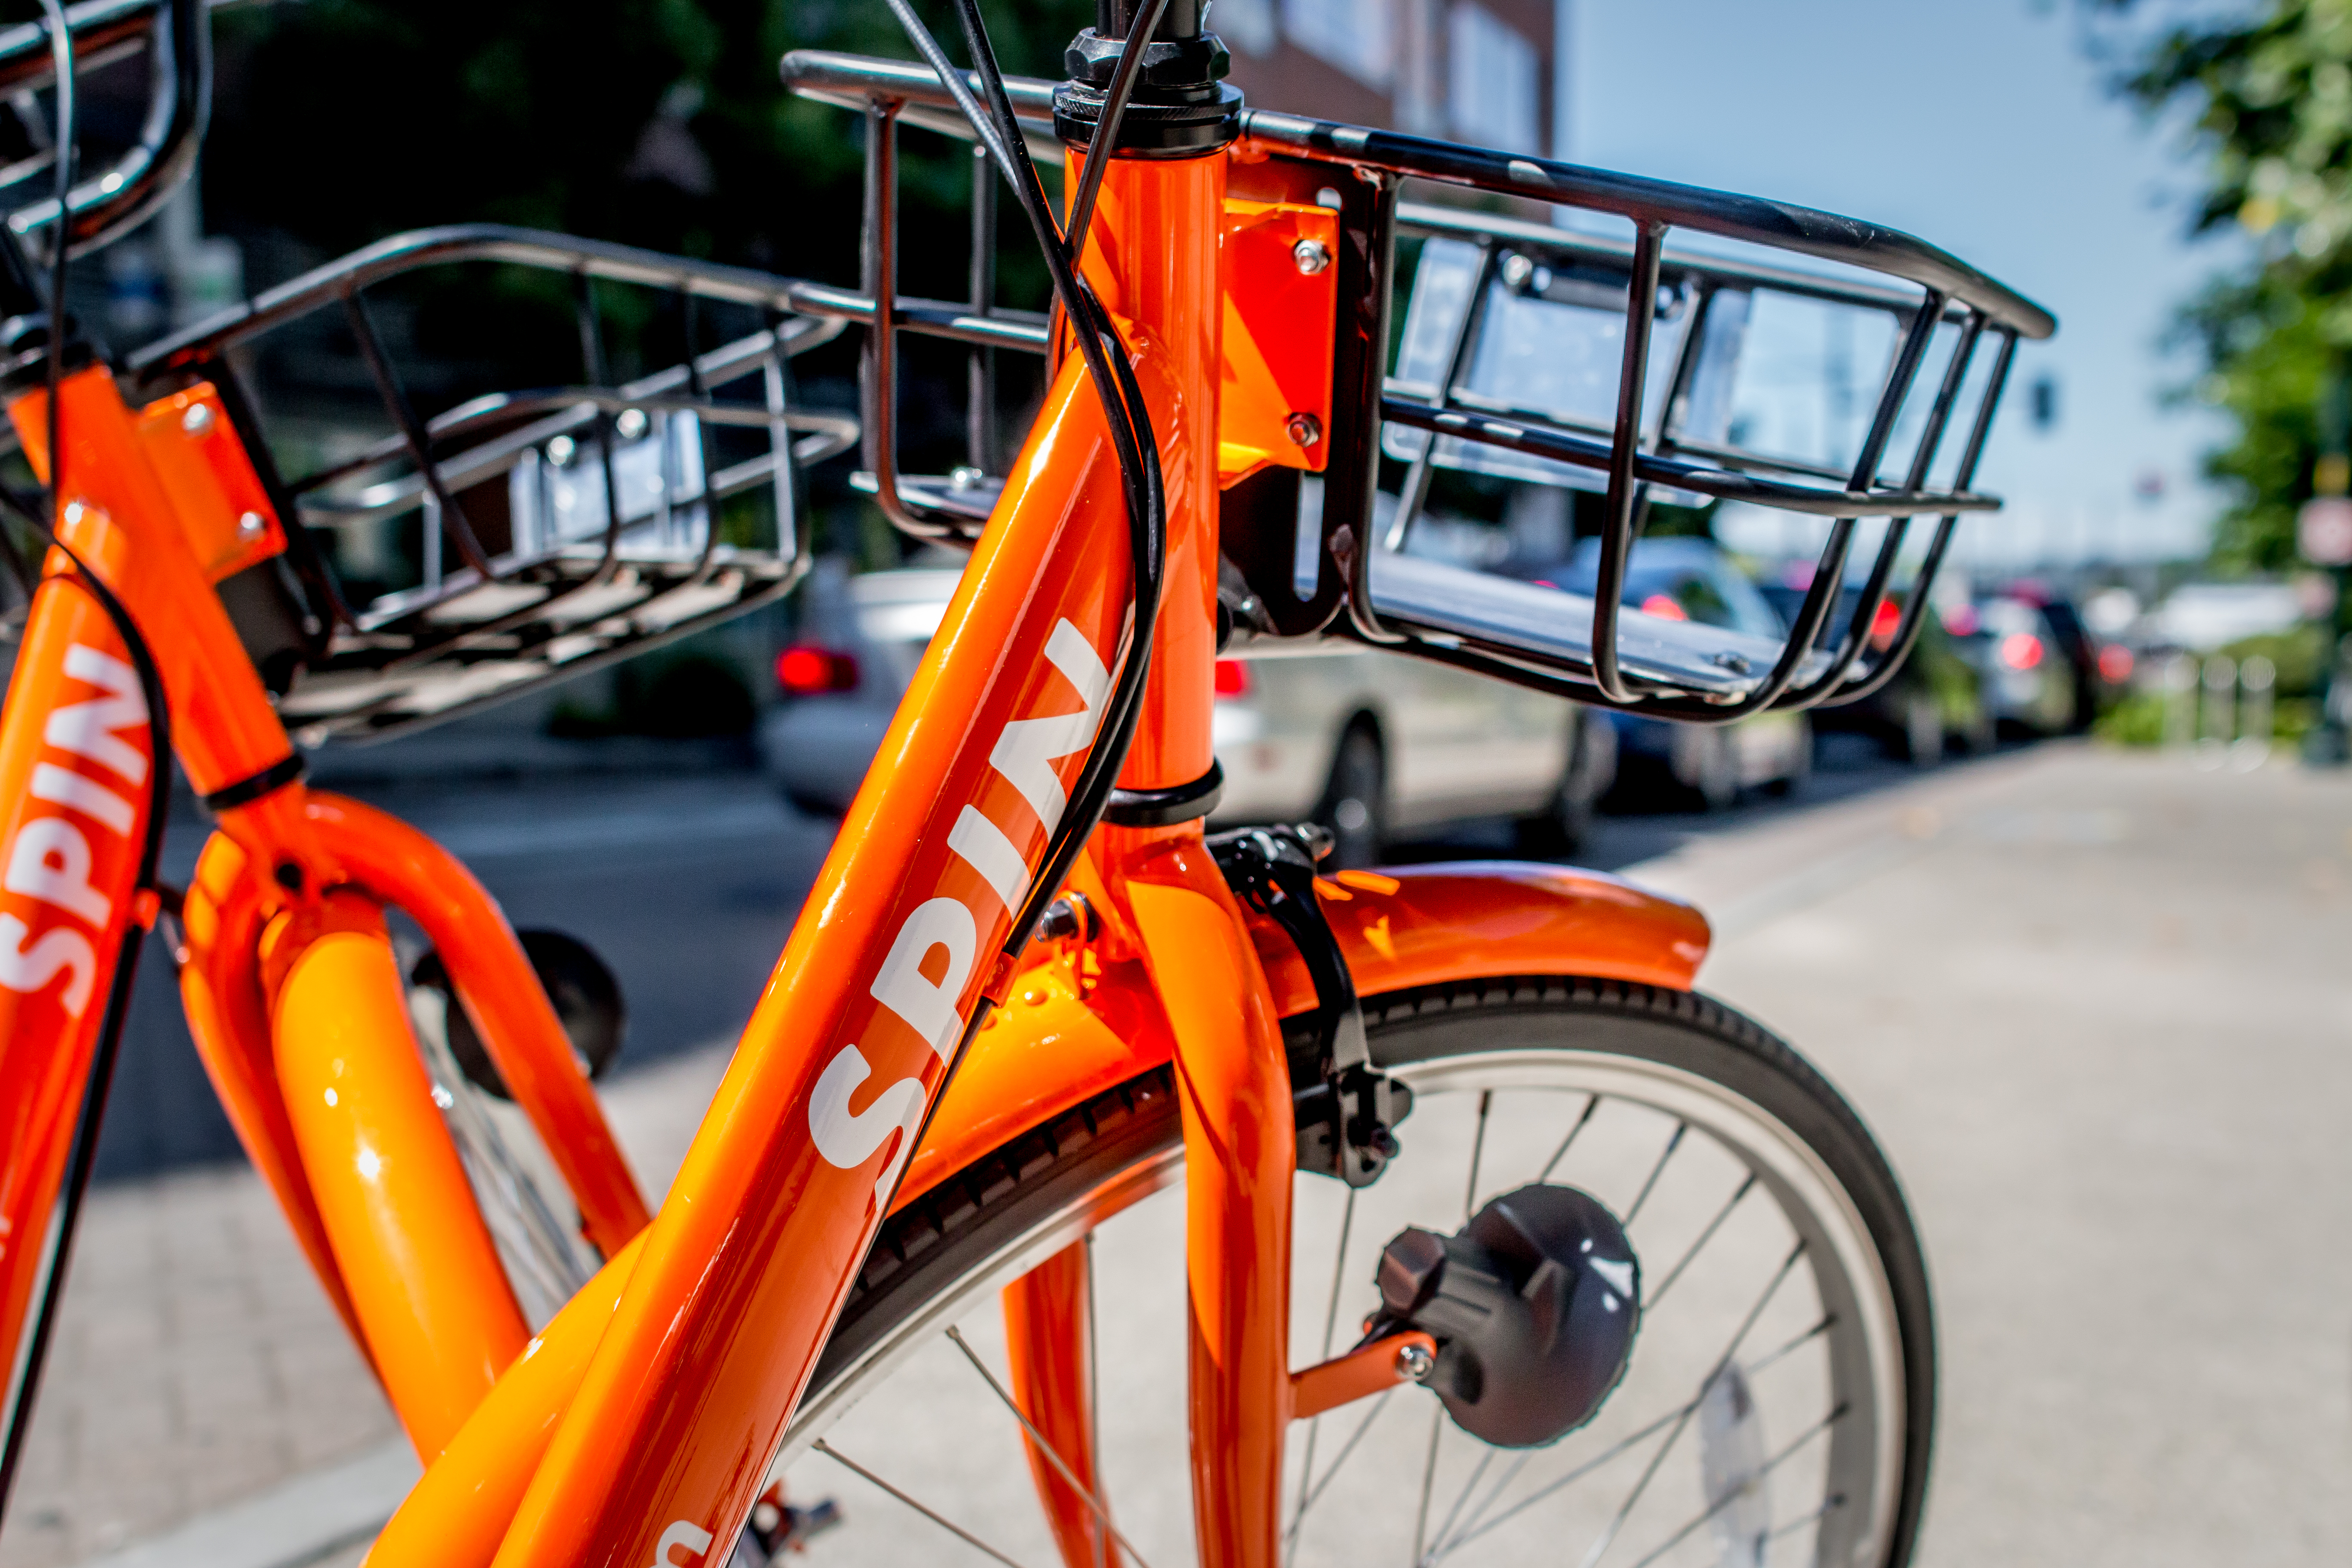 La Salle University is launching a bike share program in partnership with the company Spin. (Photo credit: Spin)